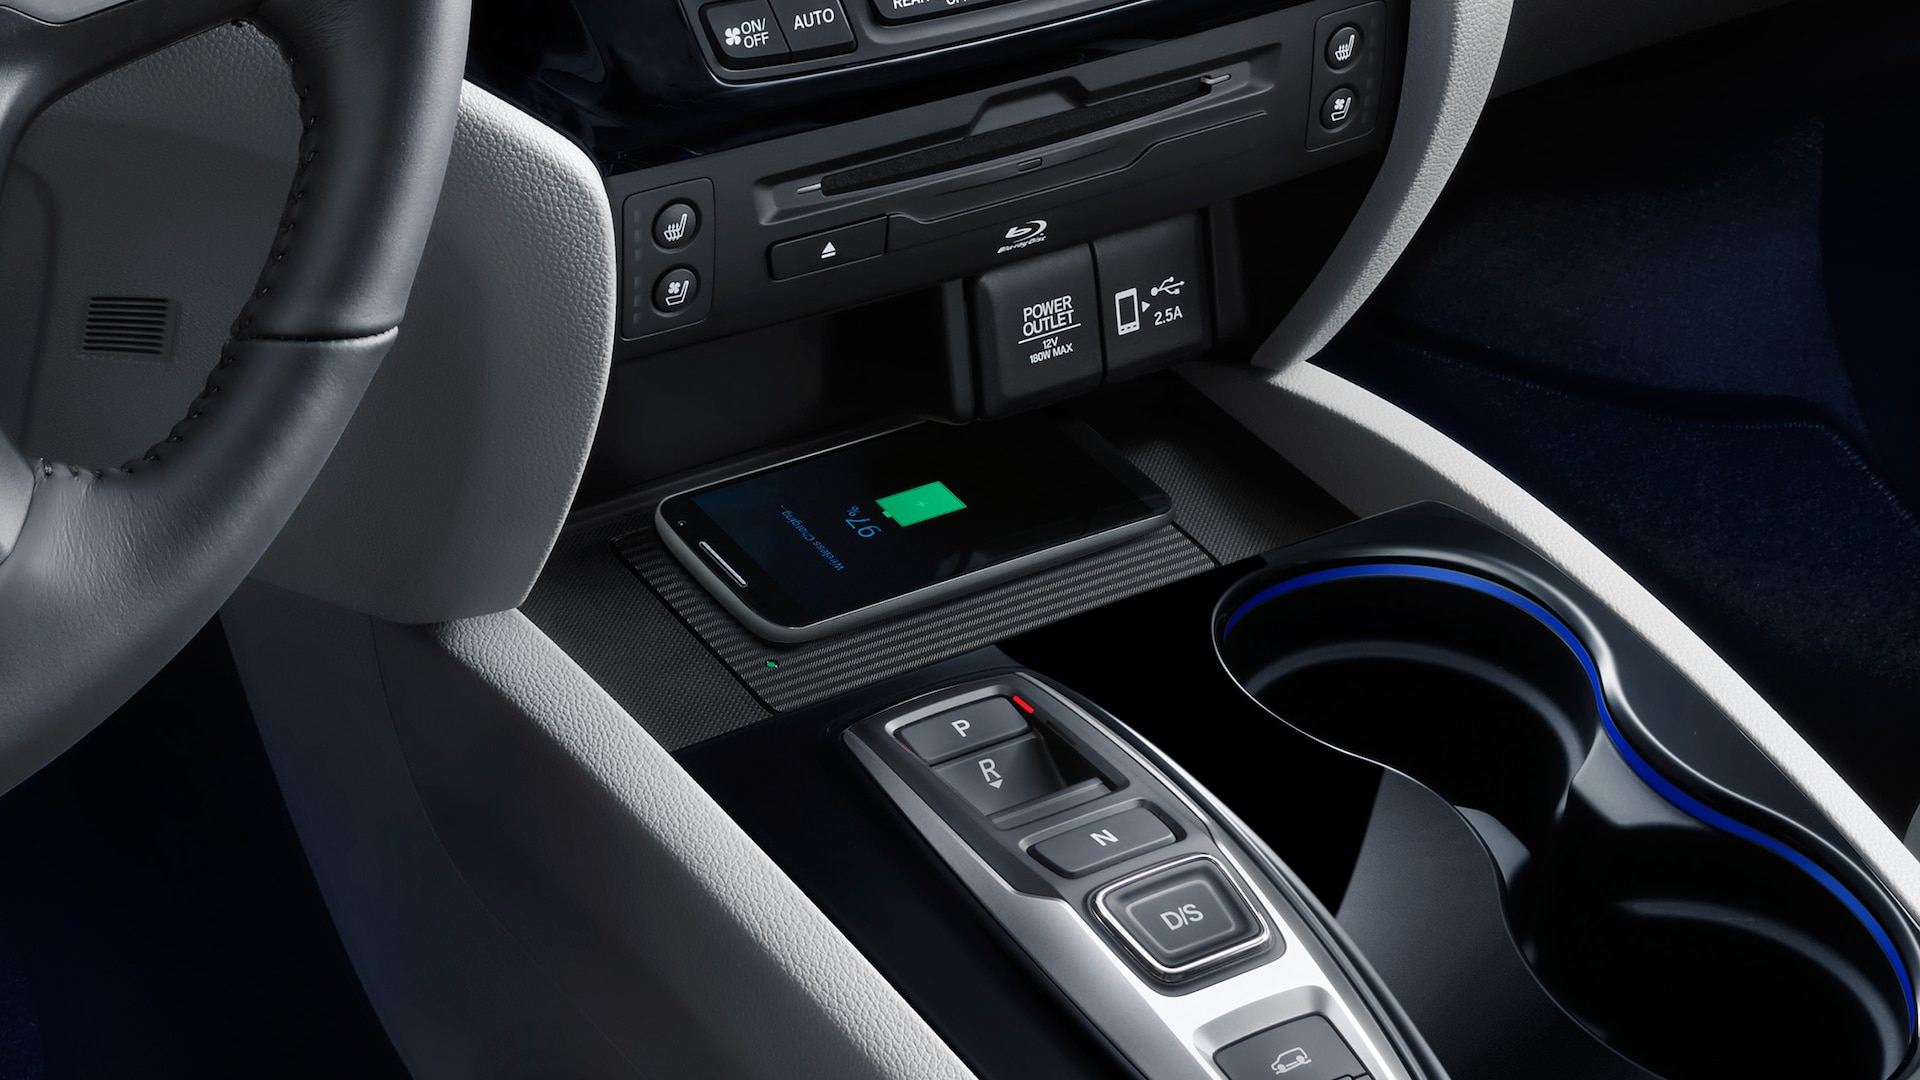 Interior cabin close-up view of wireless phone charging detail in 2020 Honda Pilot Elite with Gray Leather interior.